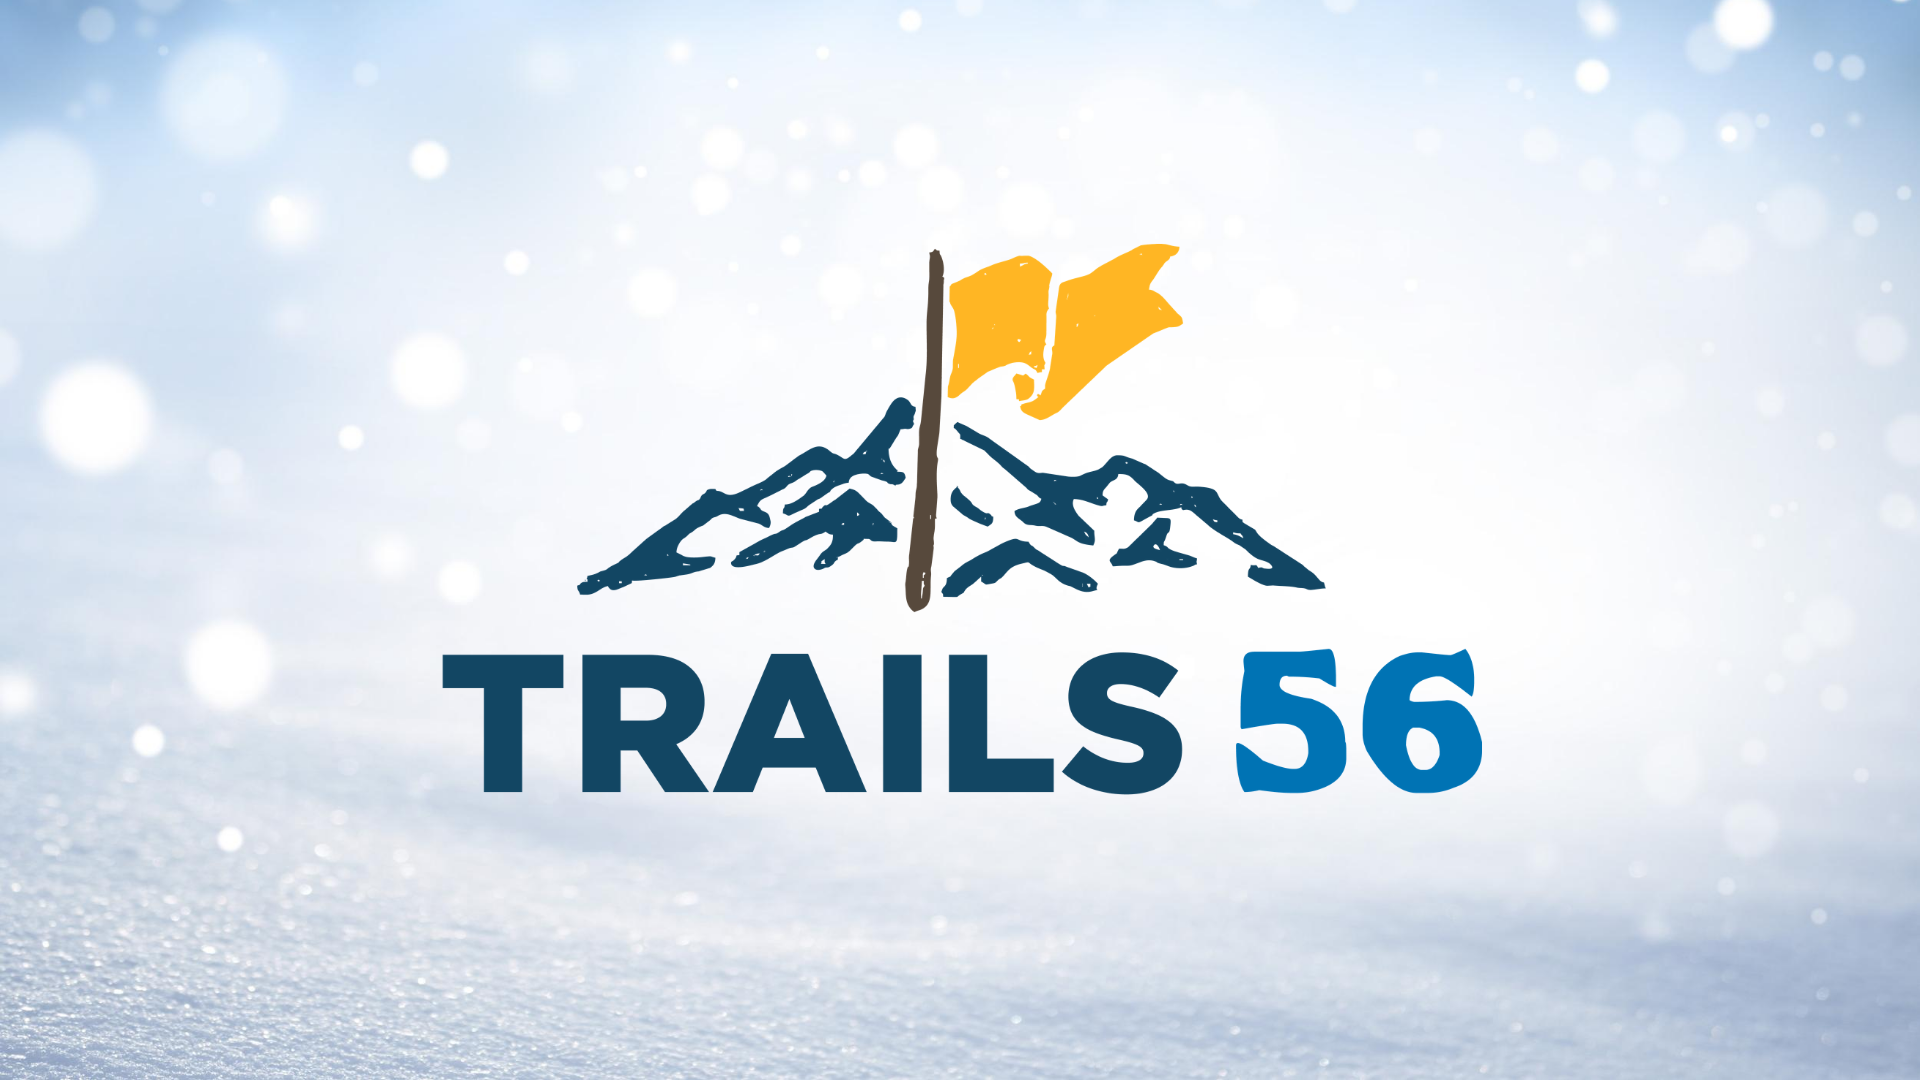 Trails 56 Winter 2020 image